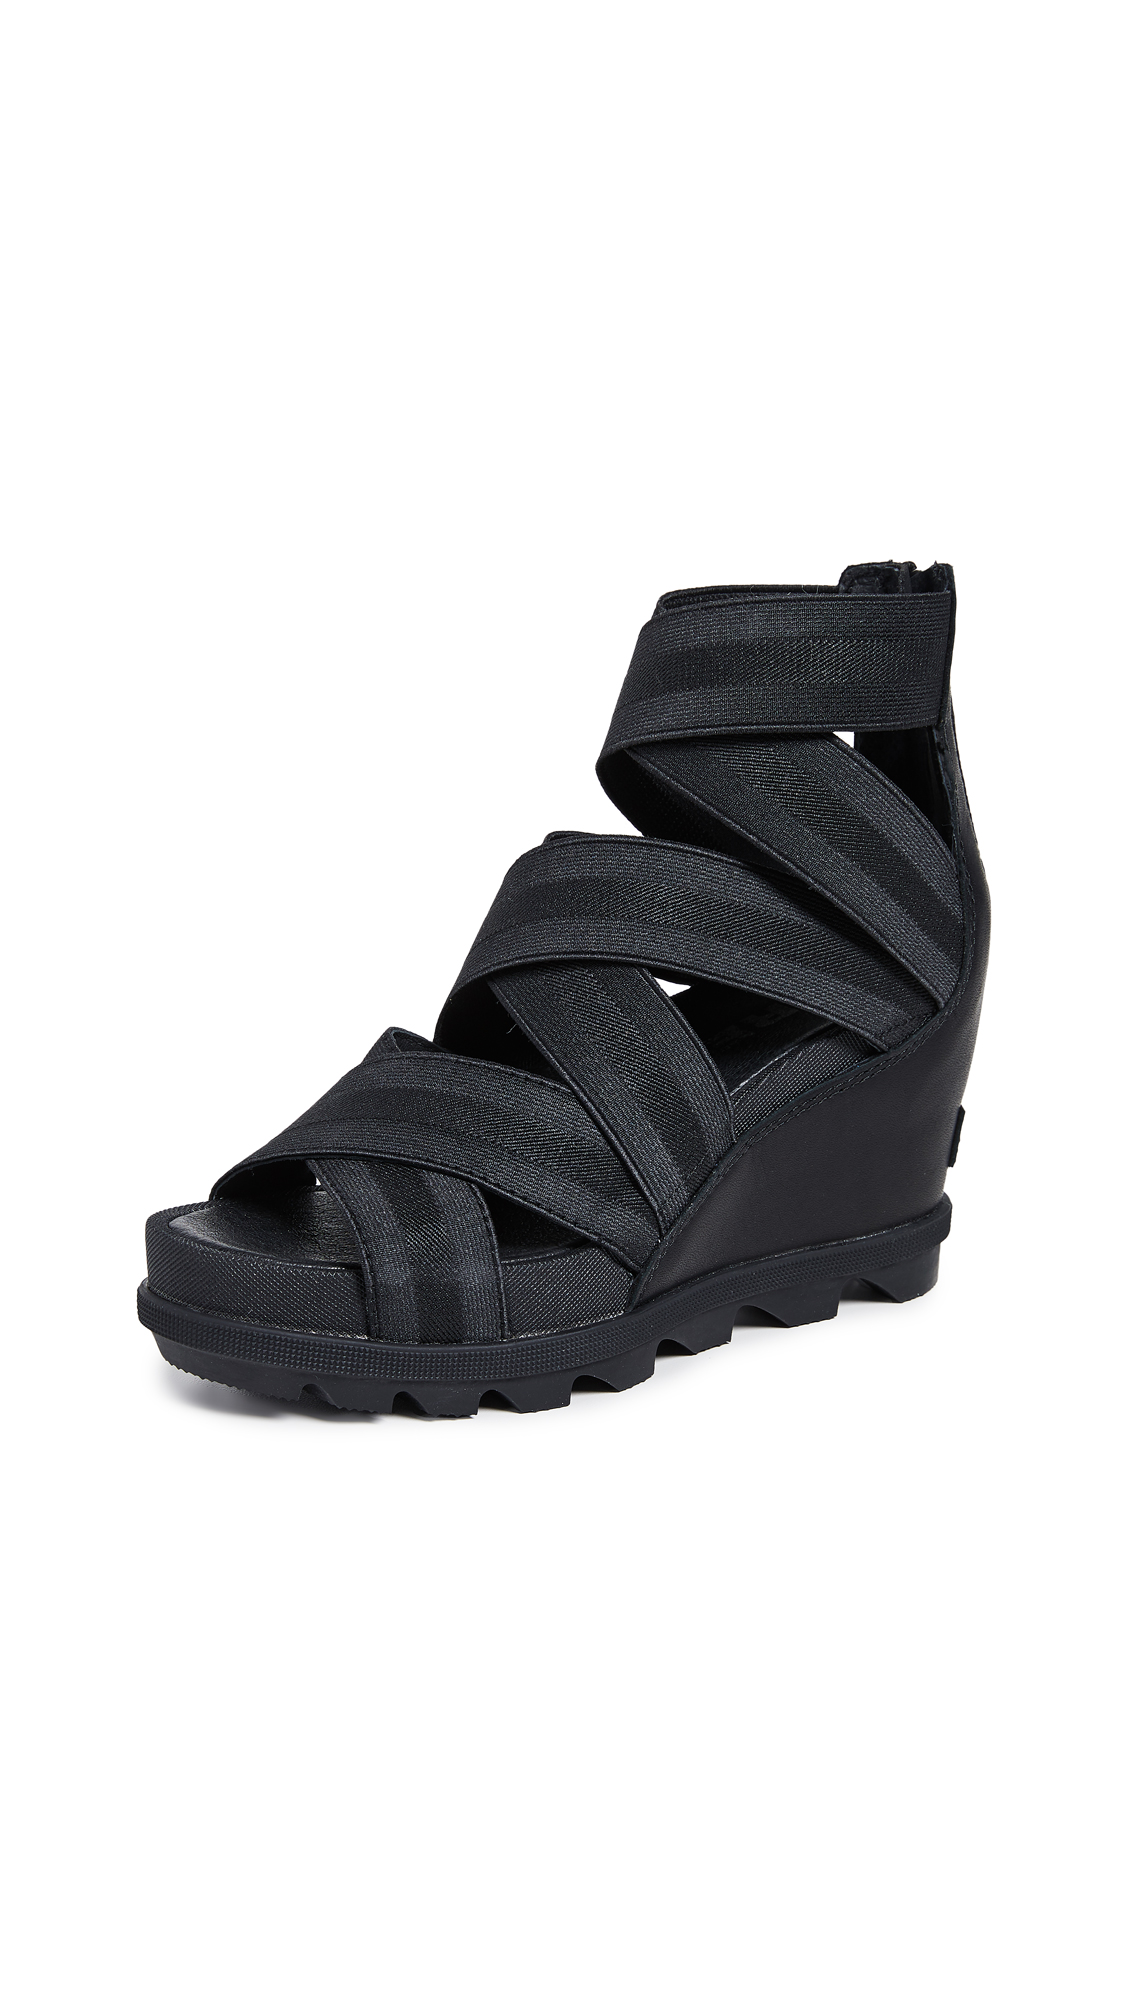 Buy Sorel Joanie II Strap Sandals online, shop Sorel